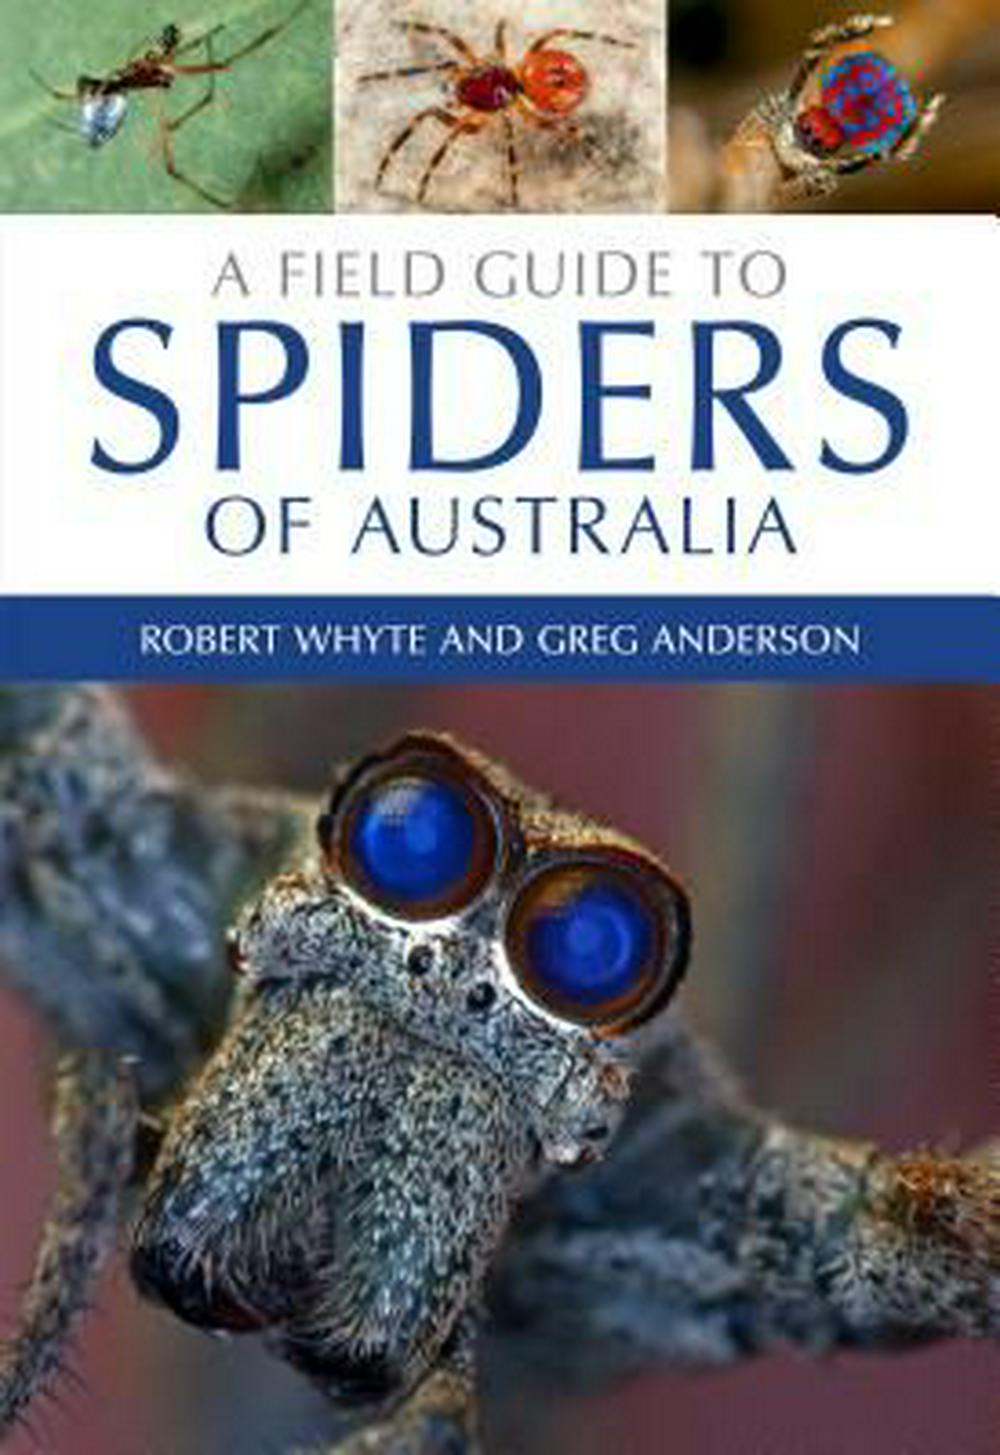 A Field Guide to Spiders of Australia by Greg Anderson, Robert Whyte, ISBN: 9780643107076